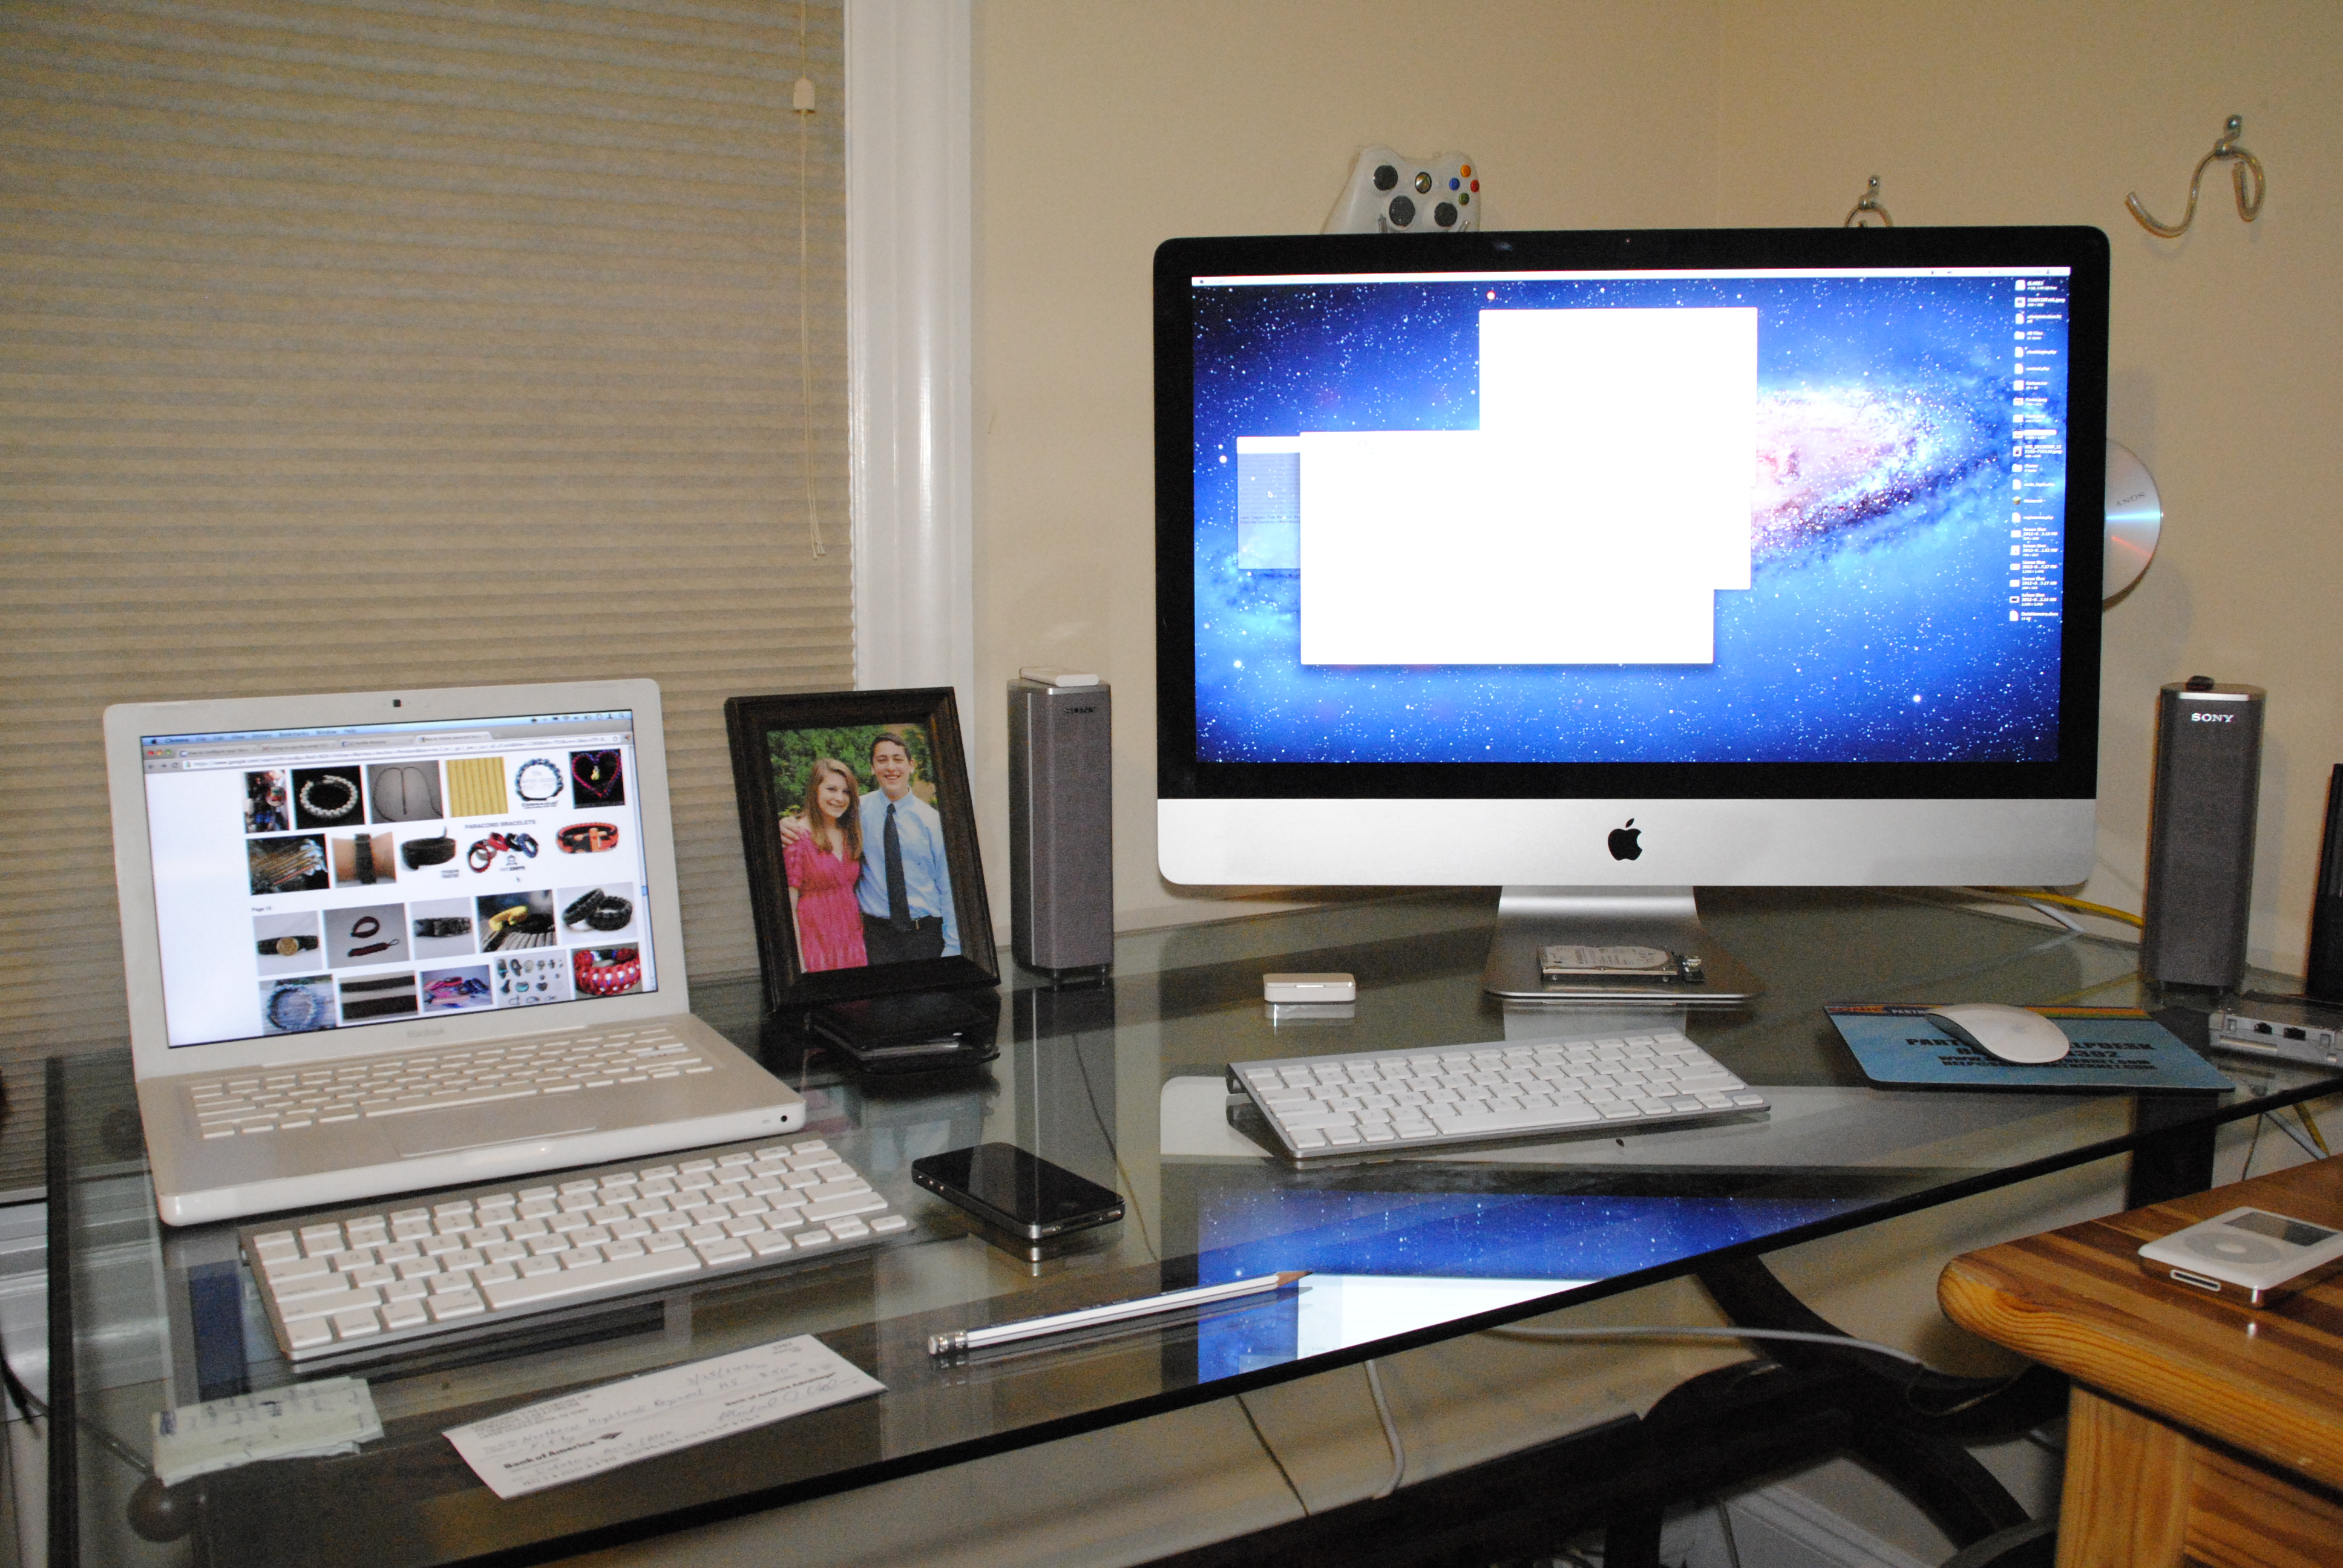 100 computer desk for imac 27 inch apple imac 27 inch 3 2ghz review pros cons and verdict - Computer desk for imac inch ...